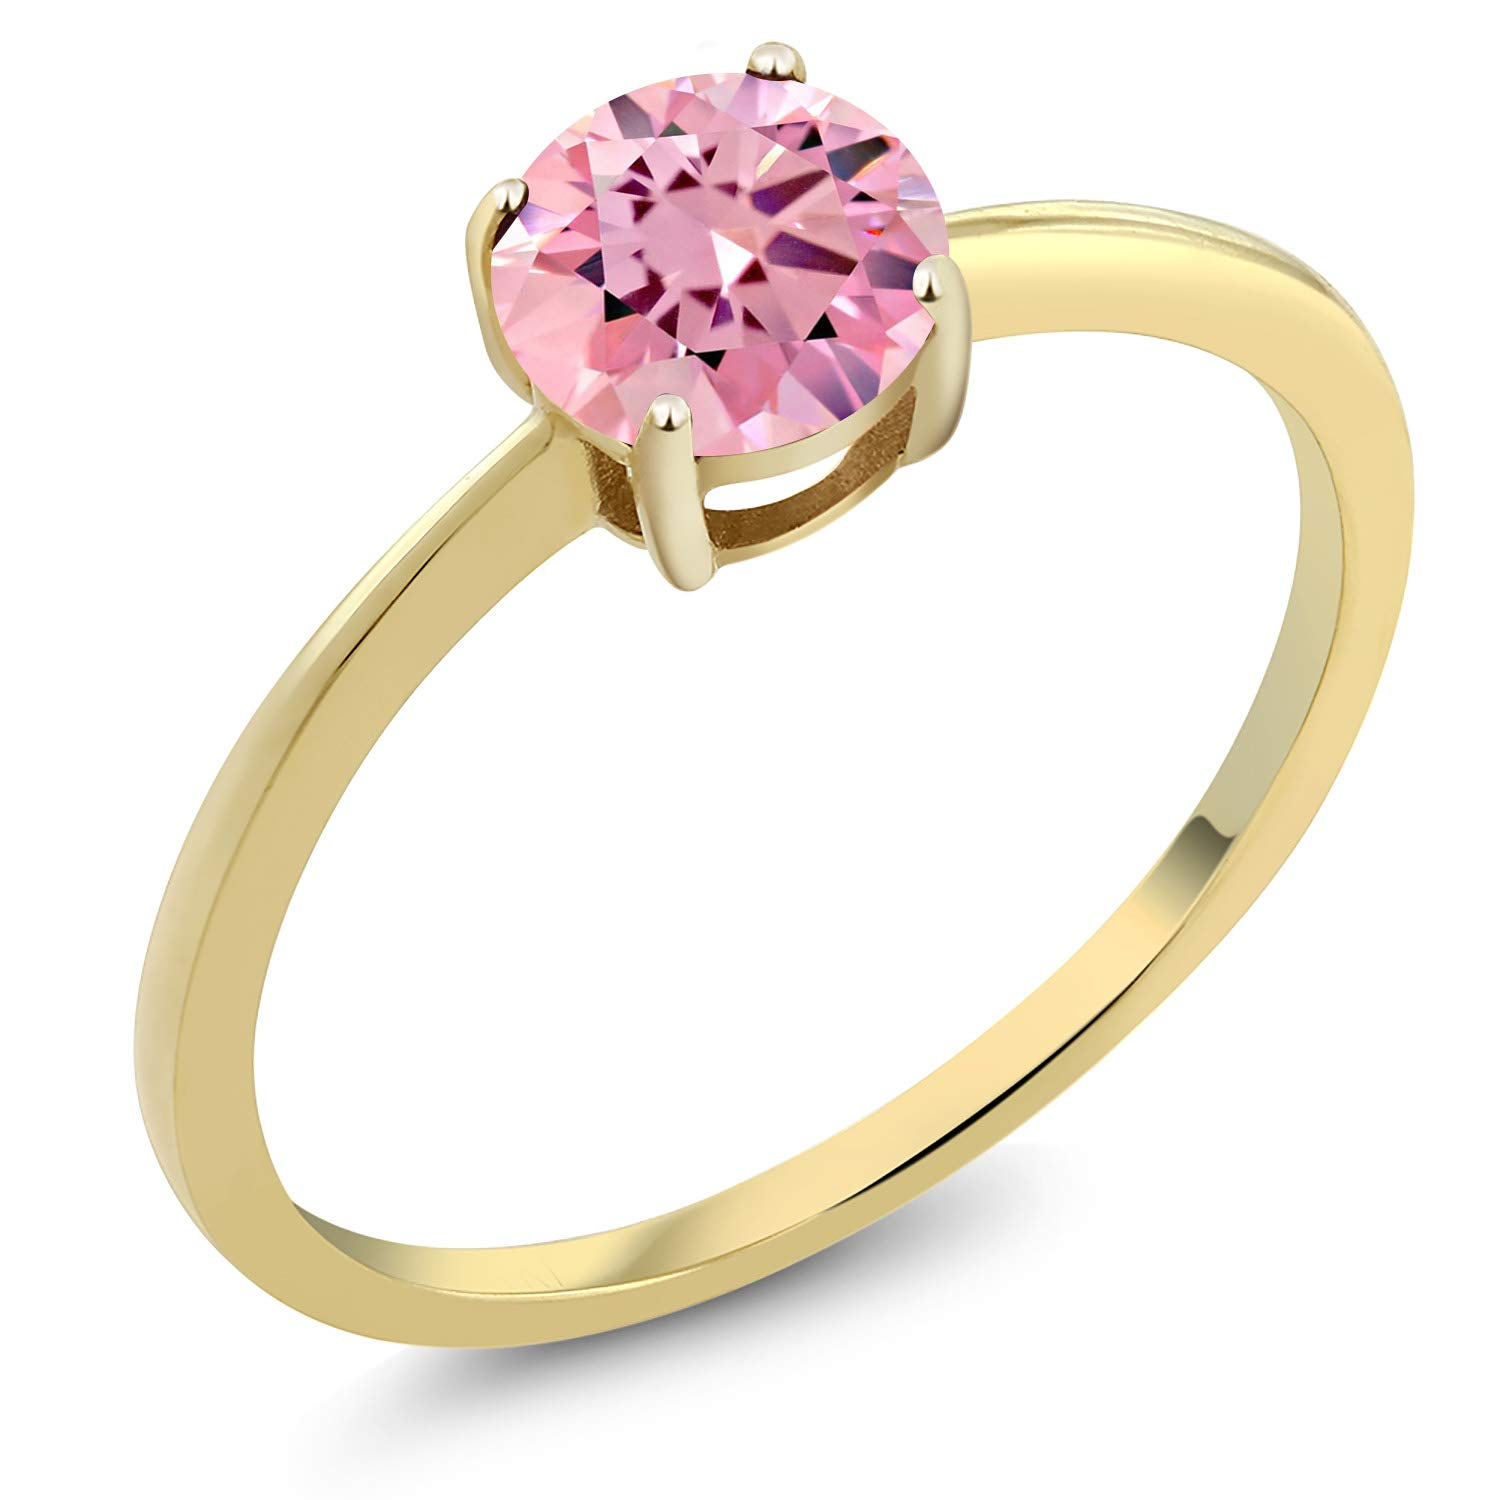 Gem Stone King 10K Yellow Gold 1.50 Ct Round Pink Zirconia Solitaire Engagement Ring